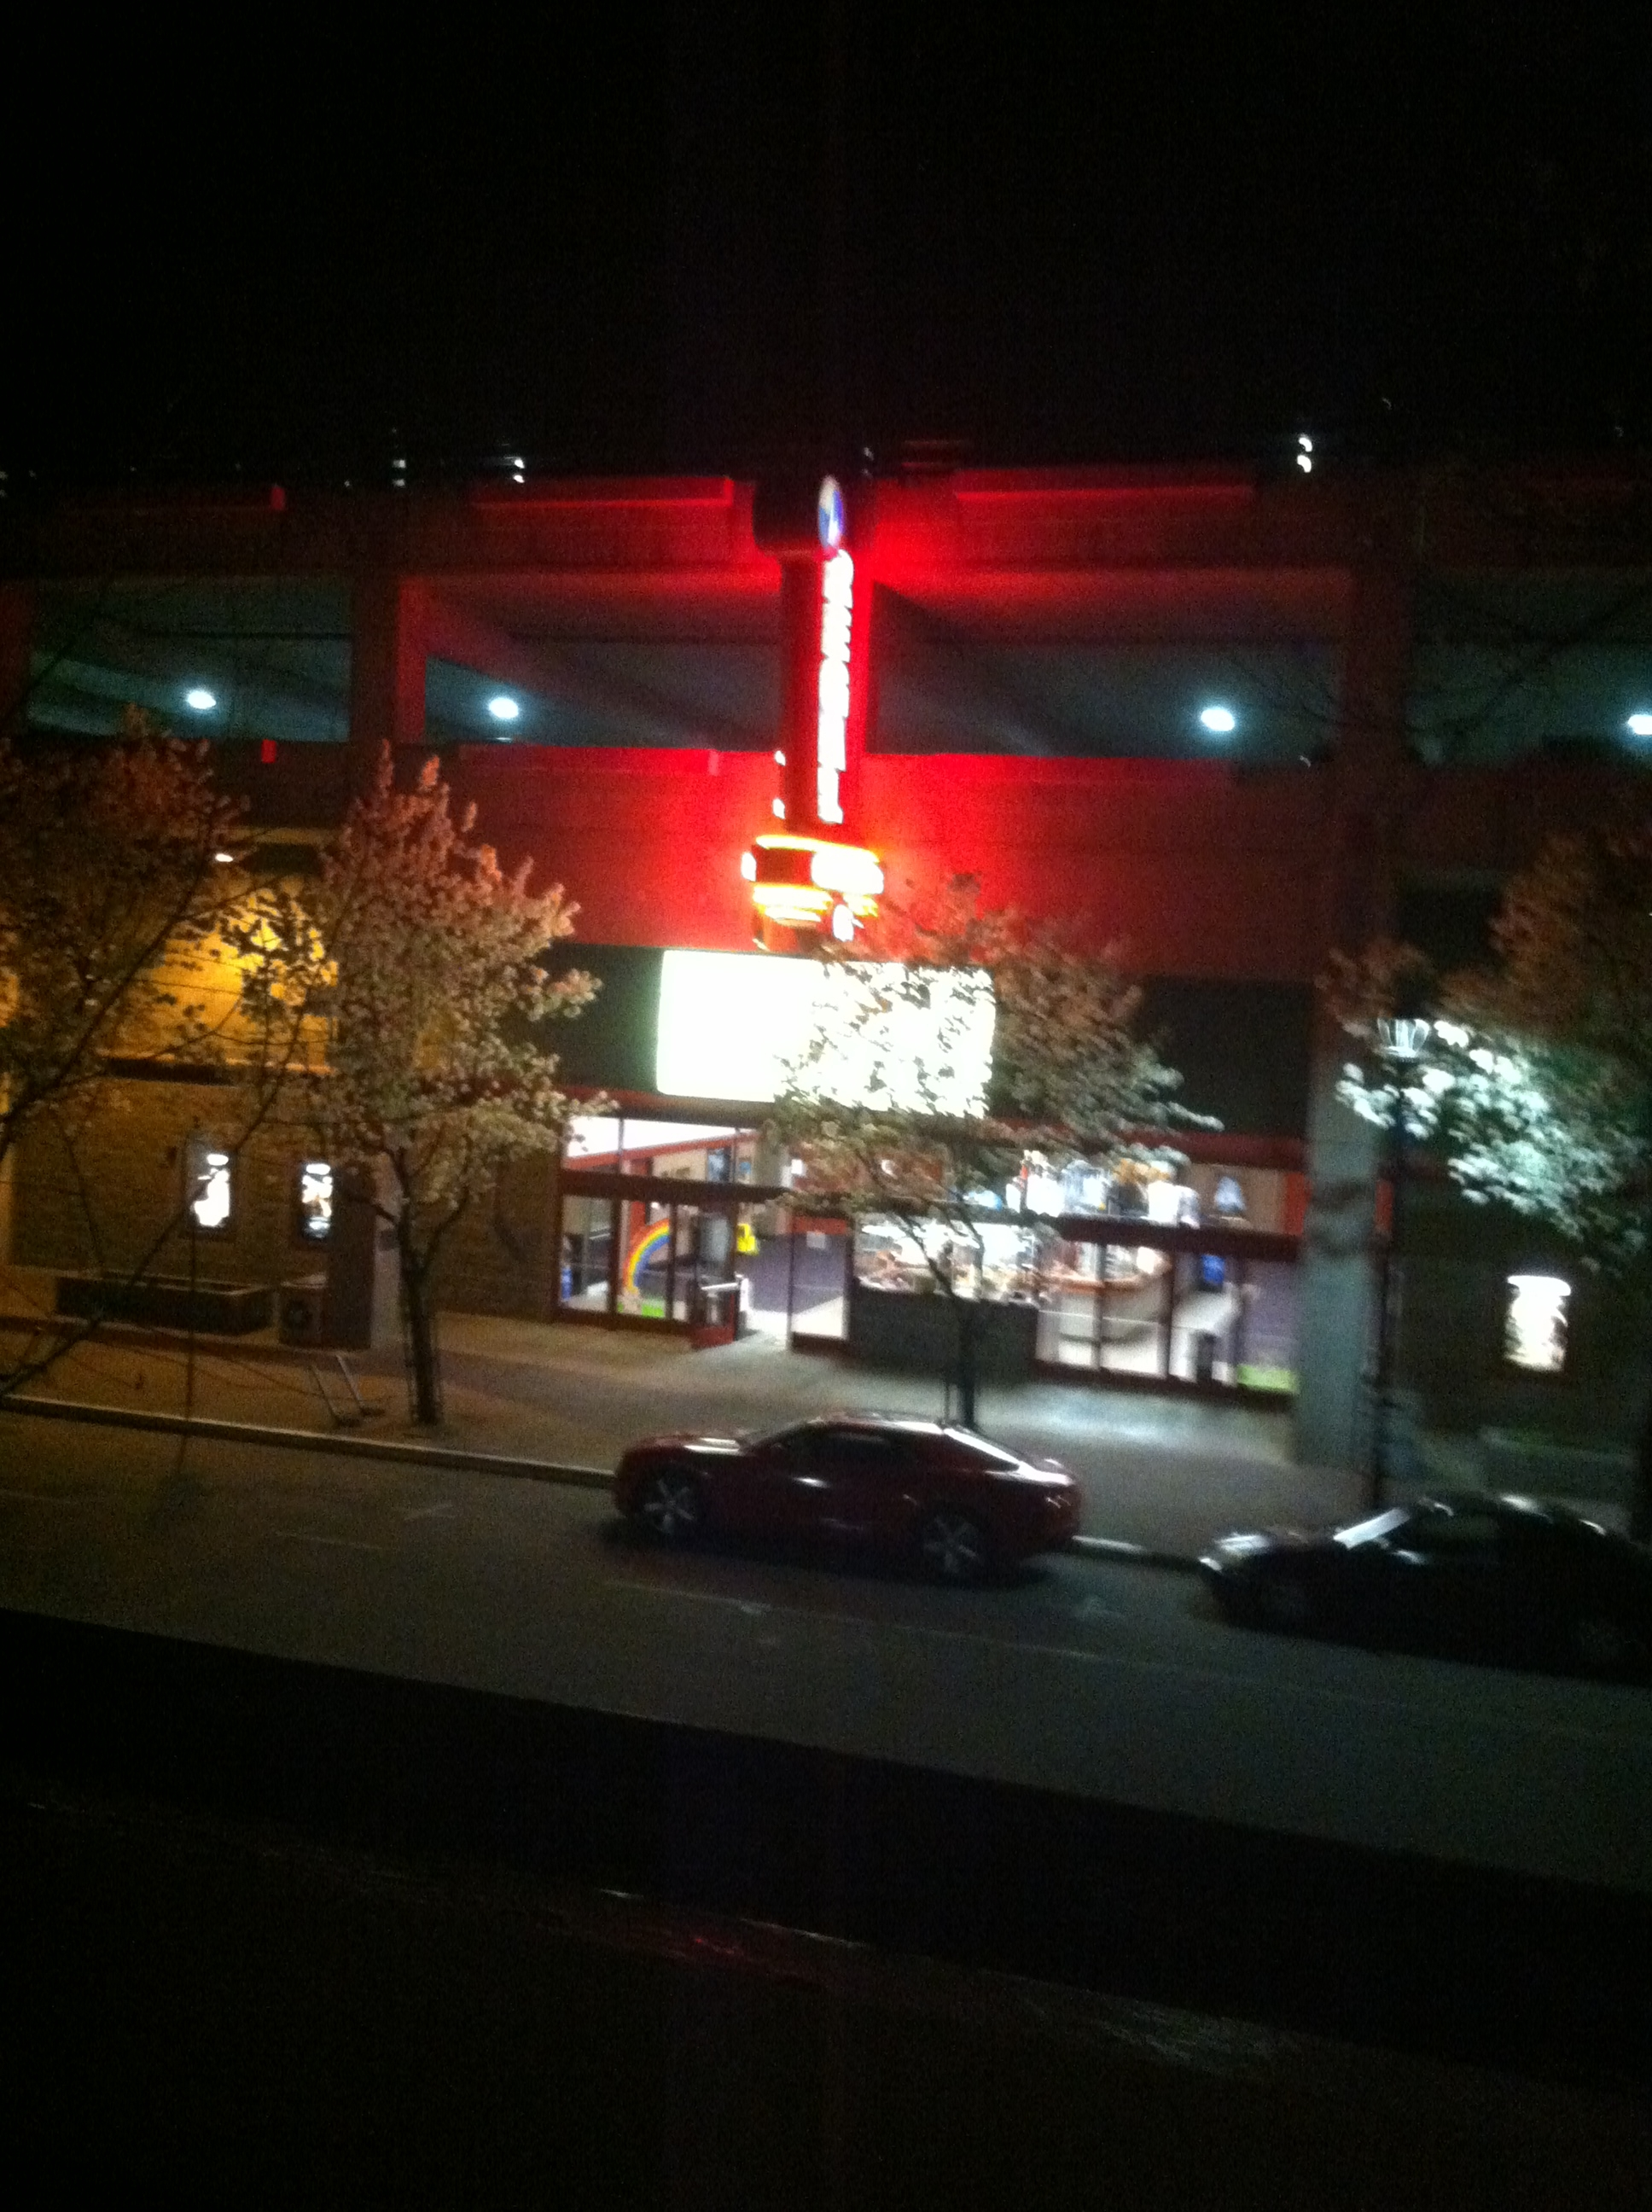 Regal Cinemas Davis Holiday 6, Davis, California. likes · 23 talking about this · 30, were here. Specials & Values: ALL DAY Tuesday enjoy $